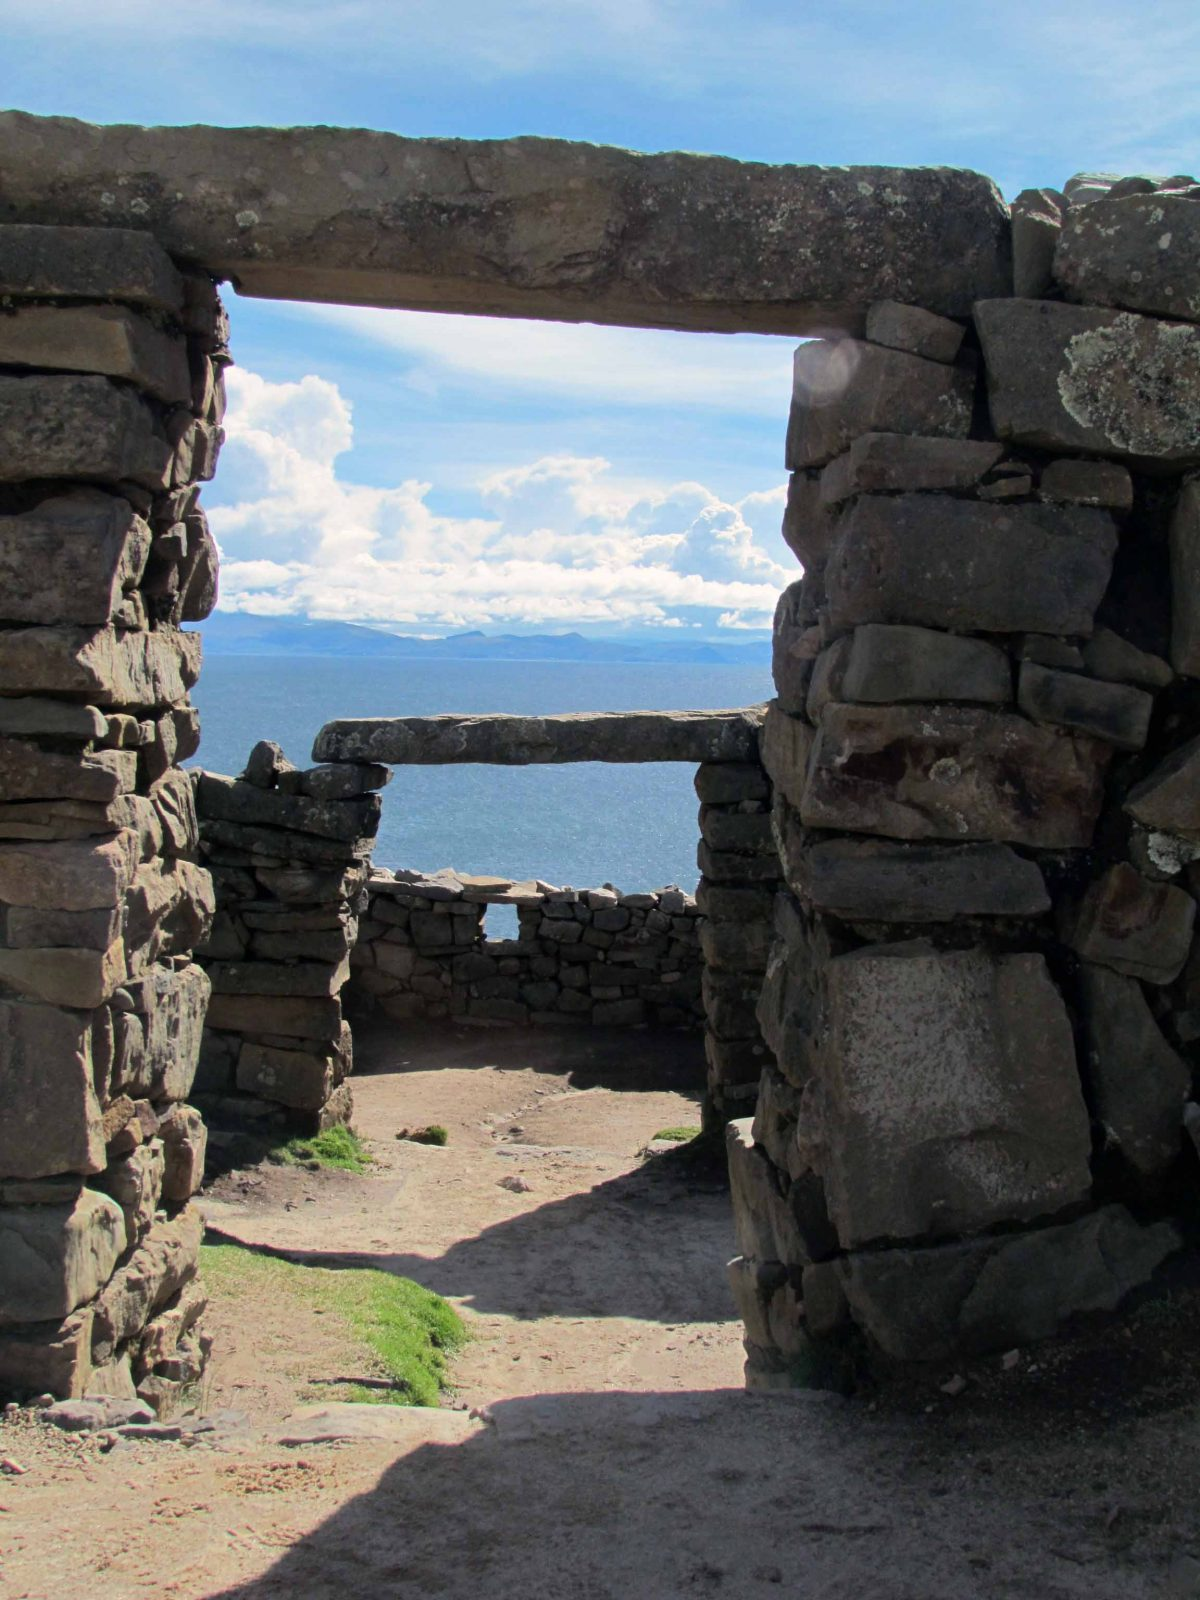 Archways at the Chicana ruins, Isla del Sol, Bolivia | ©Angela Drake